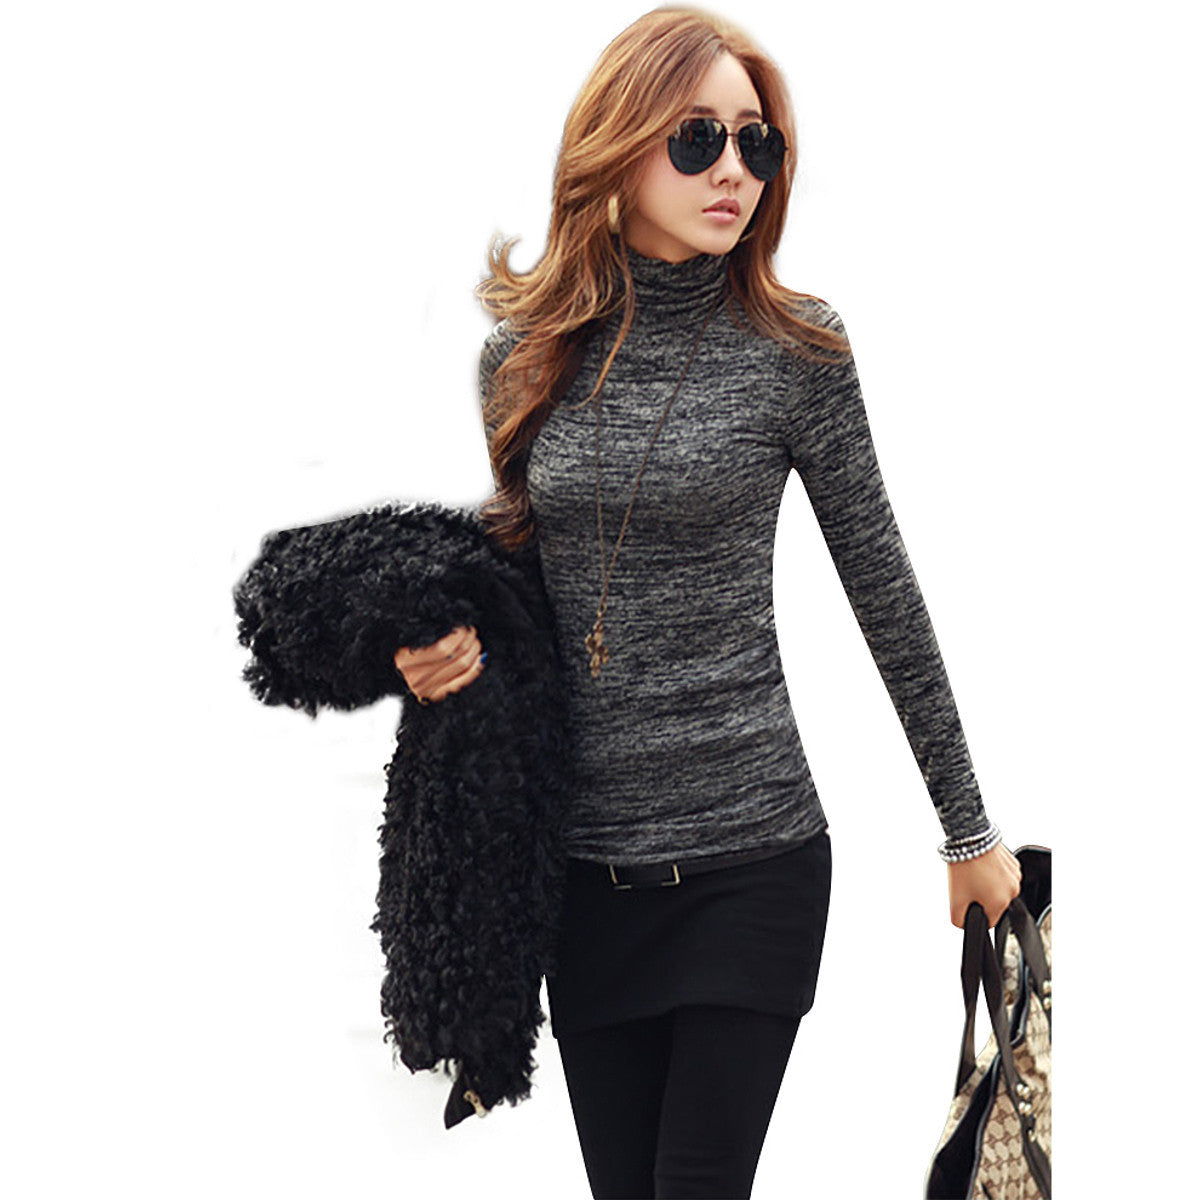 New Arrival Sweaters 2016 Slim Novelty Fashion High Neck Long Sleeve Pullovers Women Solid Black Blue Knitted Tops Plus Size